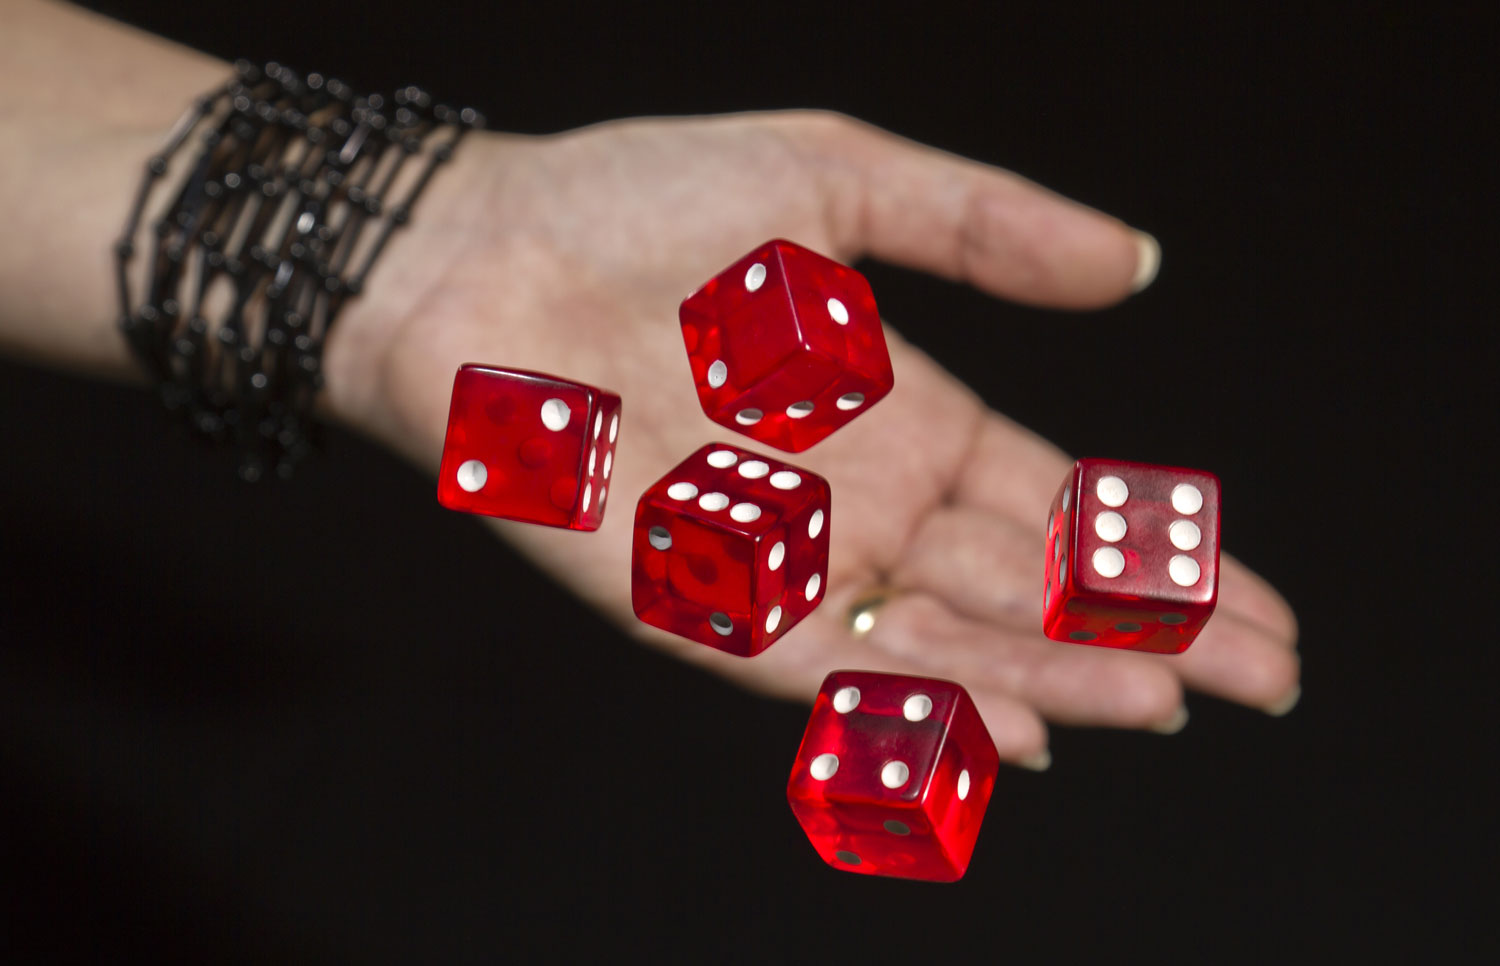 pa-hrefhttpwww.shutterstock.compic-123060865stock-photo-throwing-red-dices.htmlsrcmWgEetsx_GygZu8-H7Io9w-1-5-target_blankShutterstock.comap